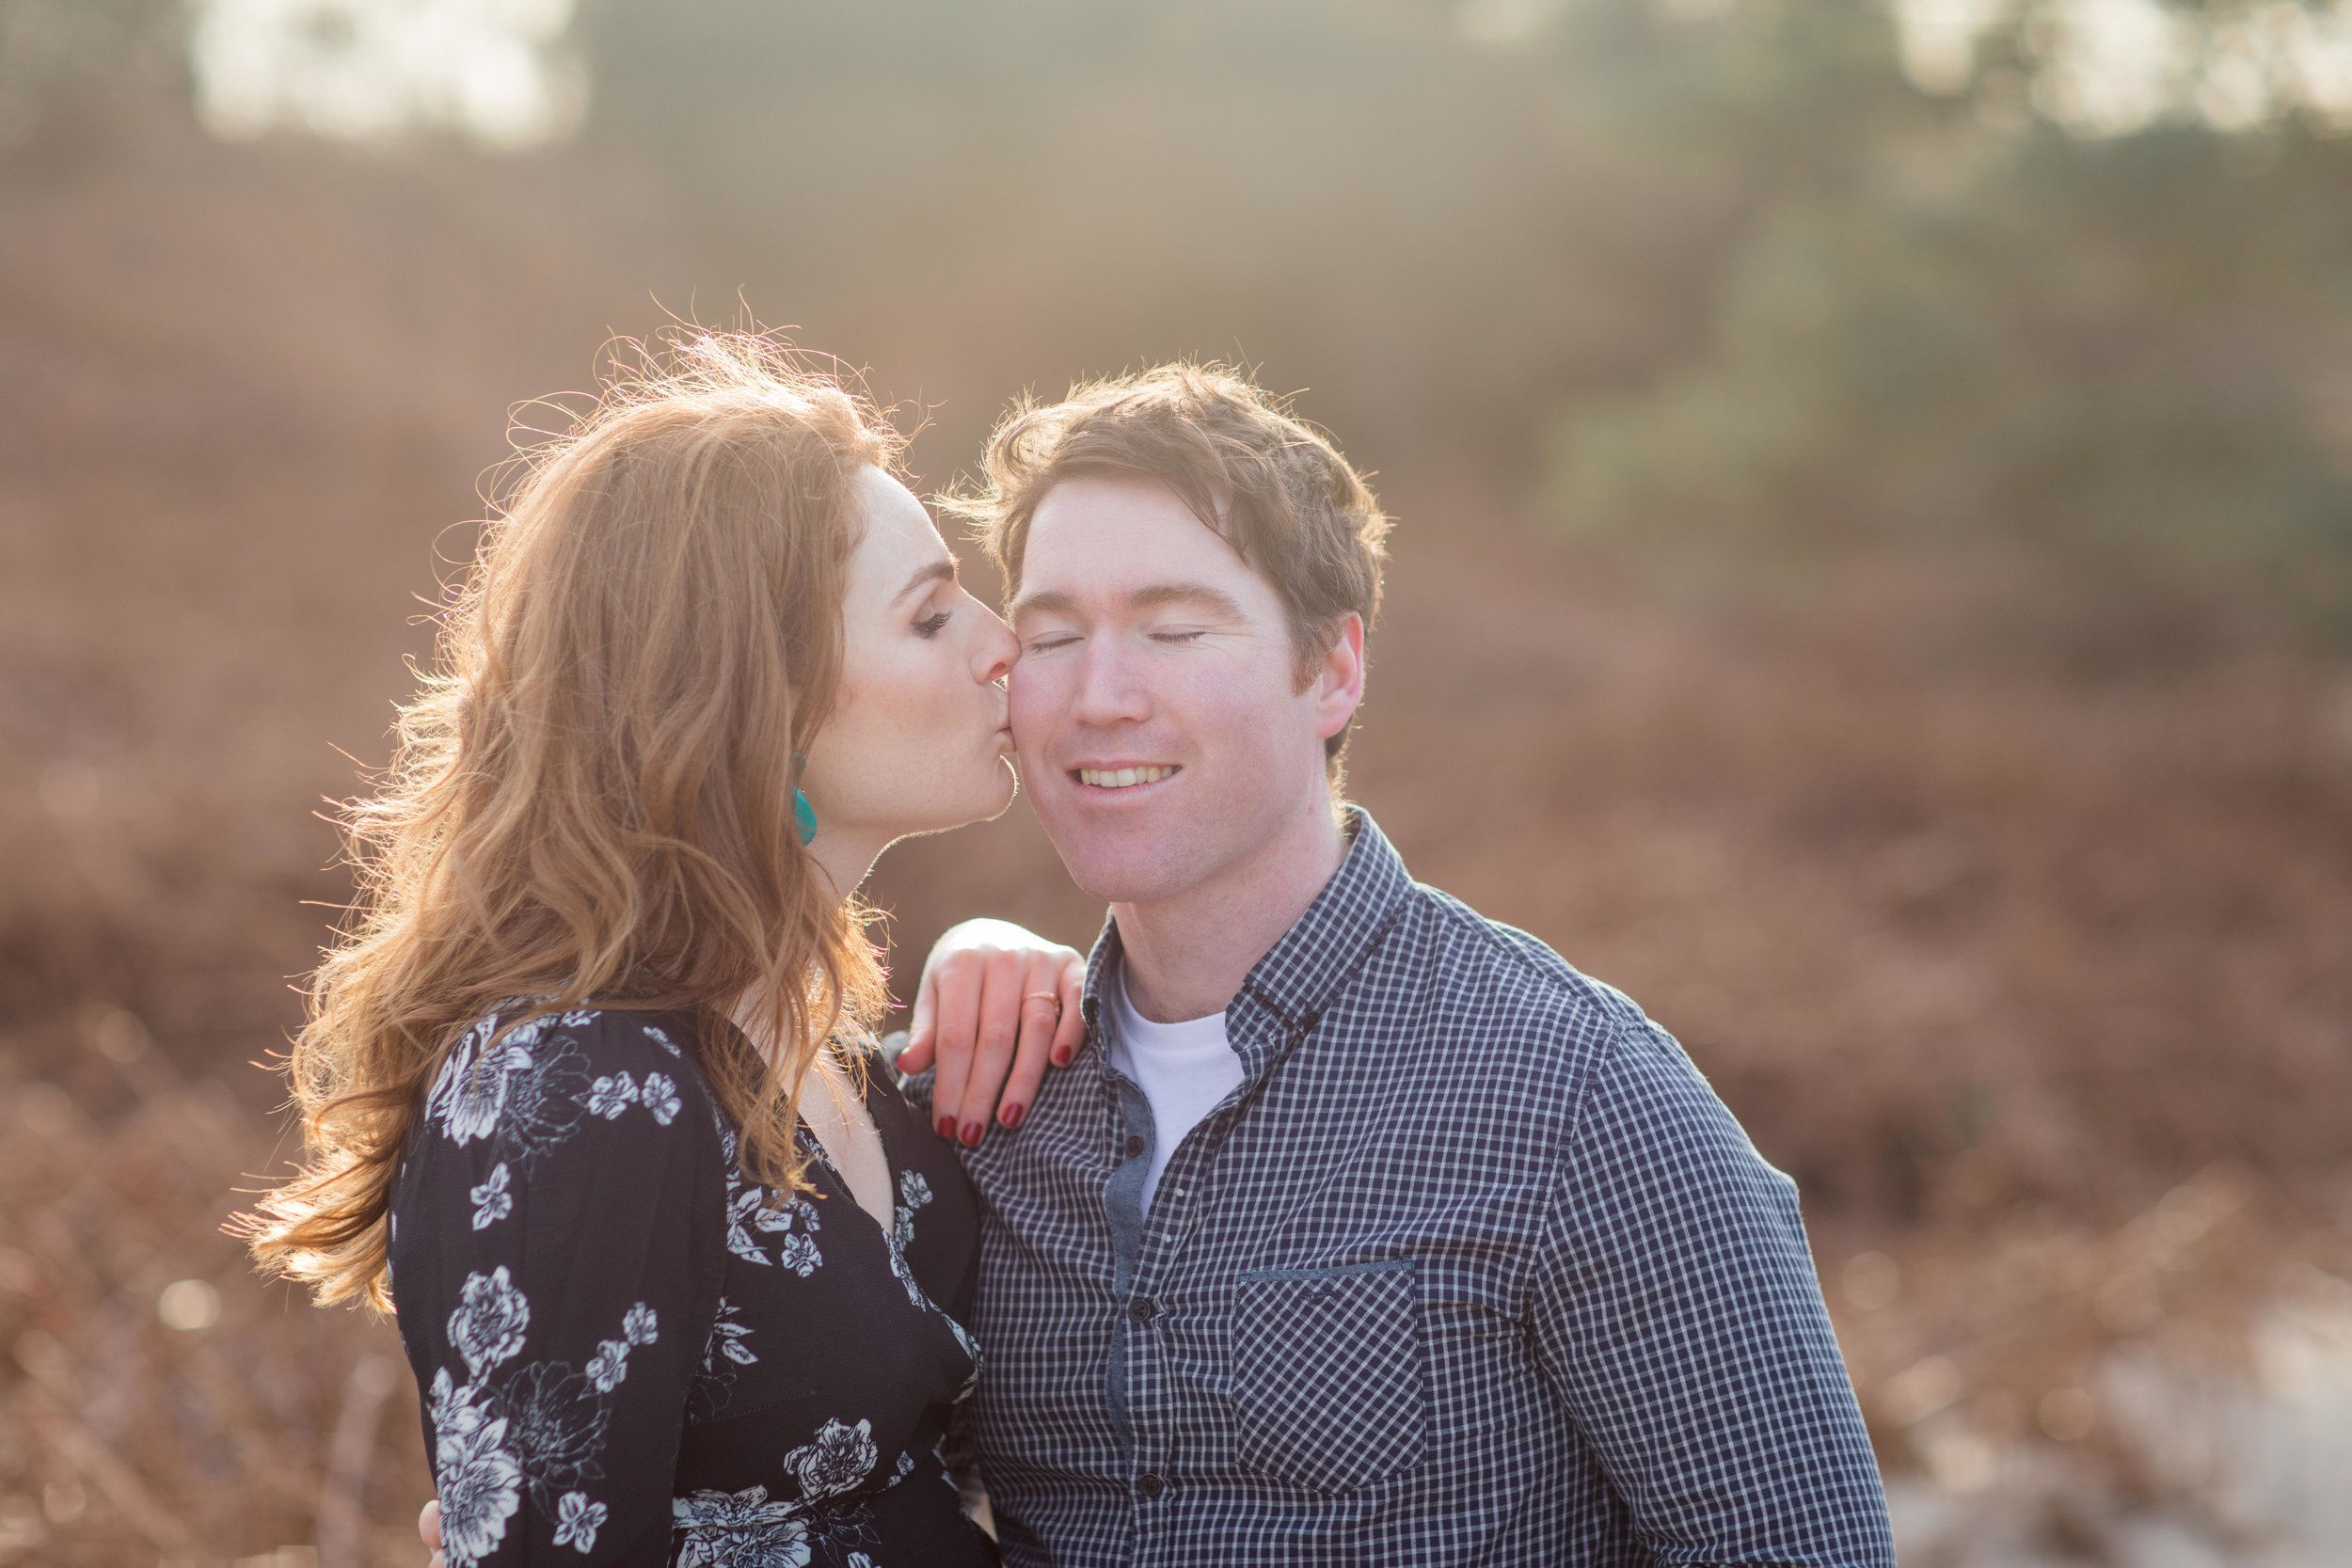 a photoshoot in ireland's setting sun a woman is kissing her future husband on the cheek she has red hair green earrings wearing a black dress with white flowers and red nail varnish